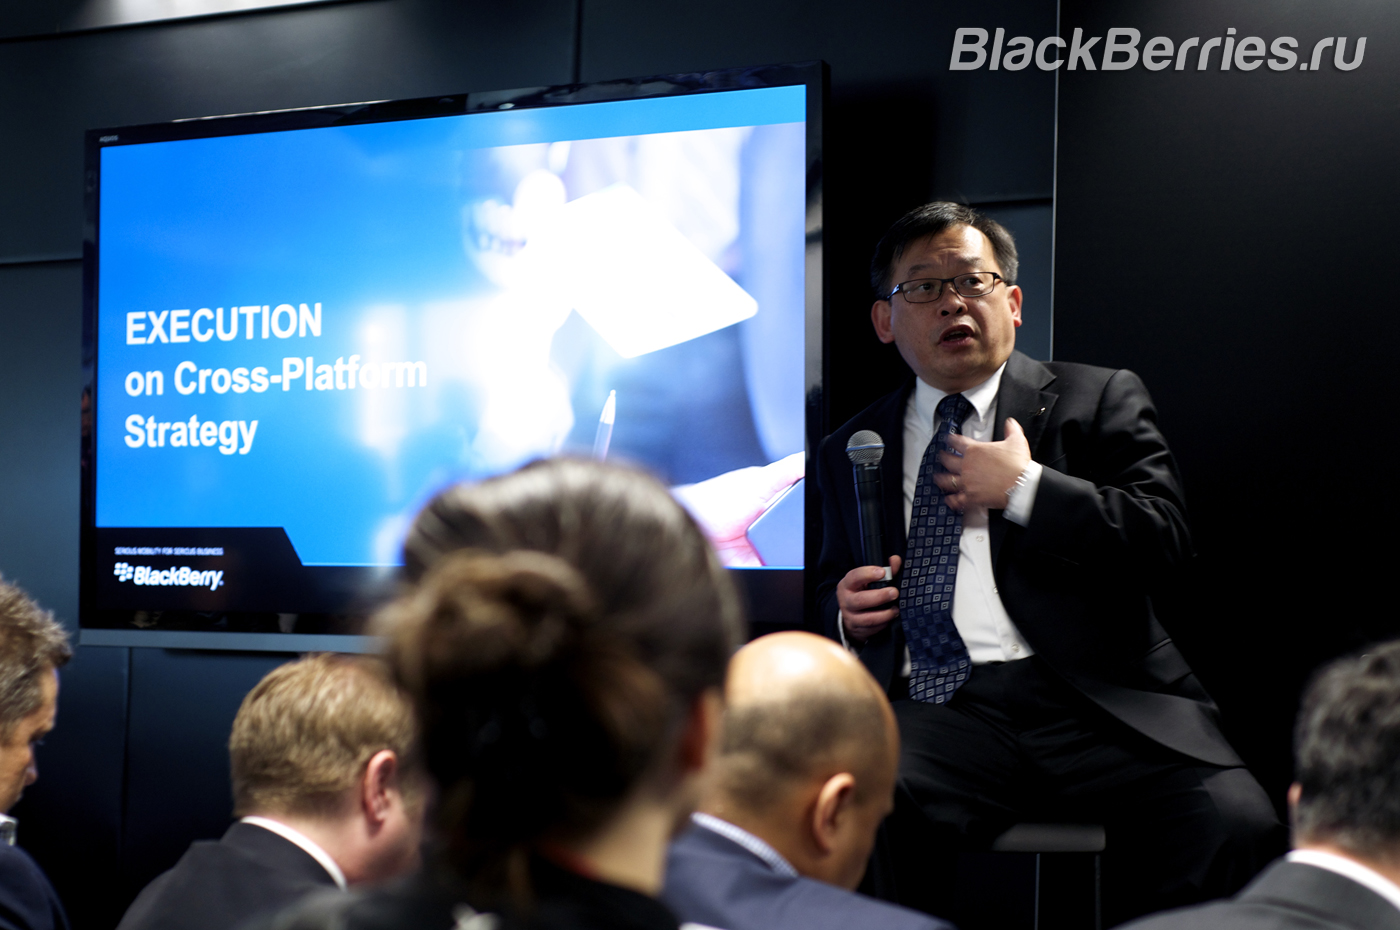 BlackBerry-MWC2015-05